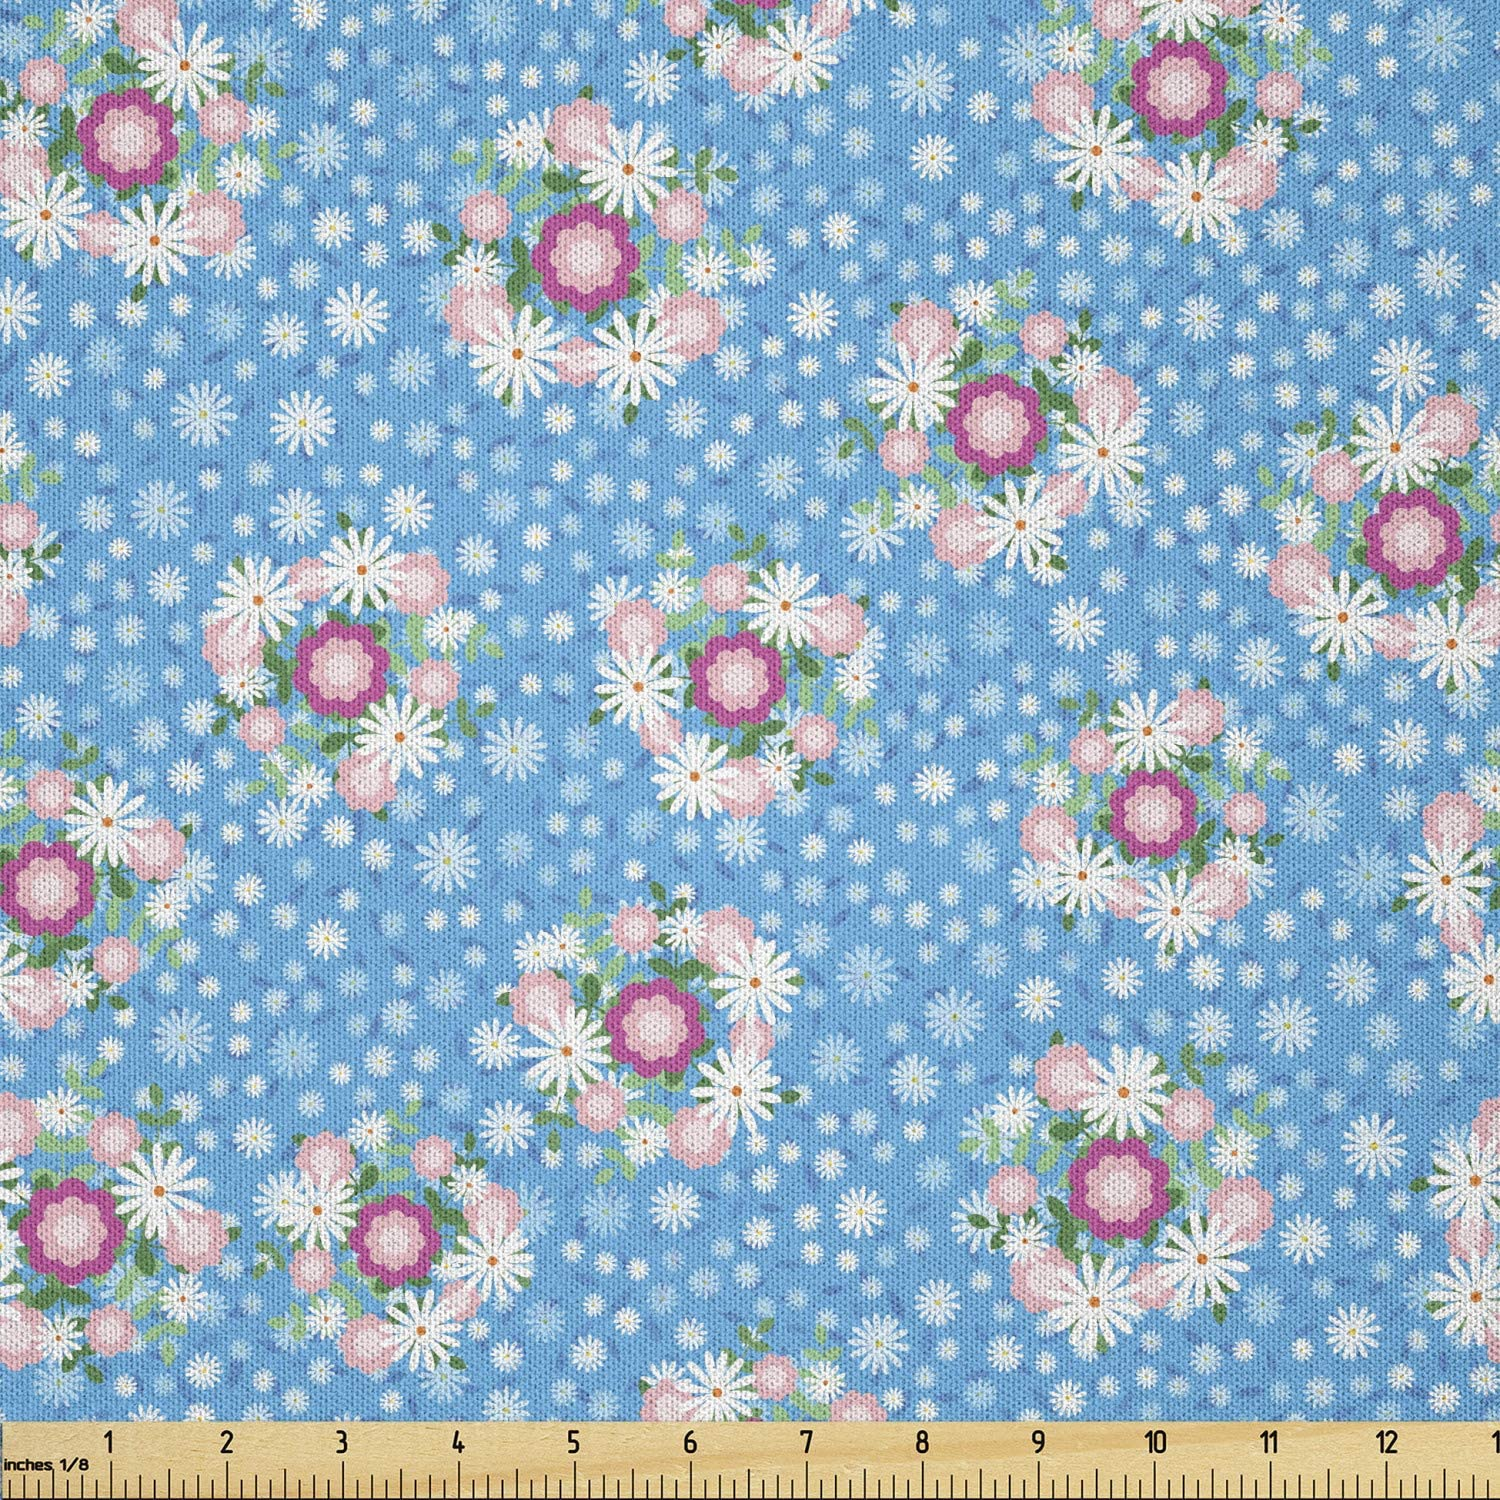 Lunarable Floral Fabric by The Bri Corsage Limited time for free shipping New arrival Shabby Bouquets Yard